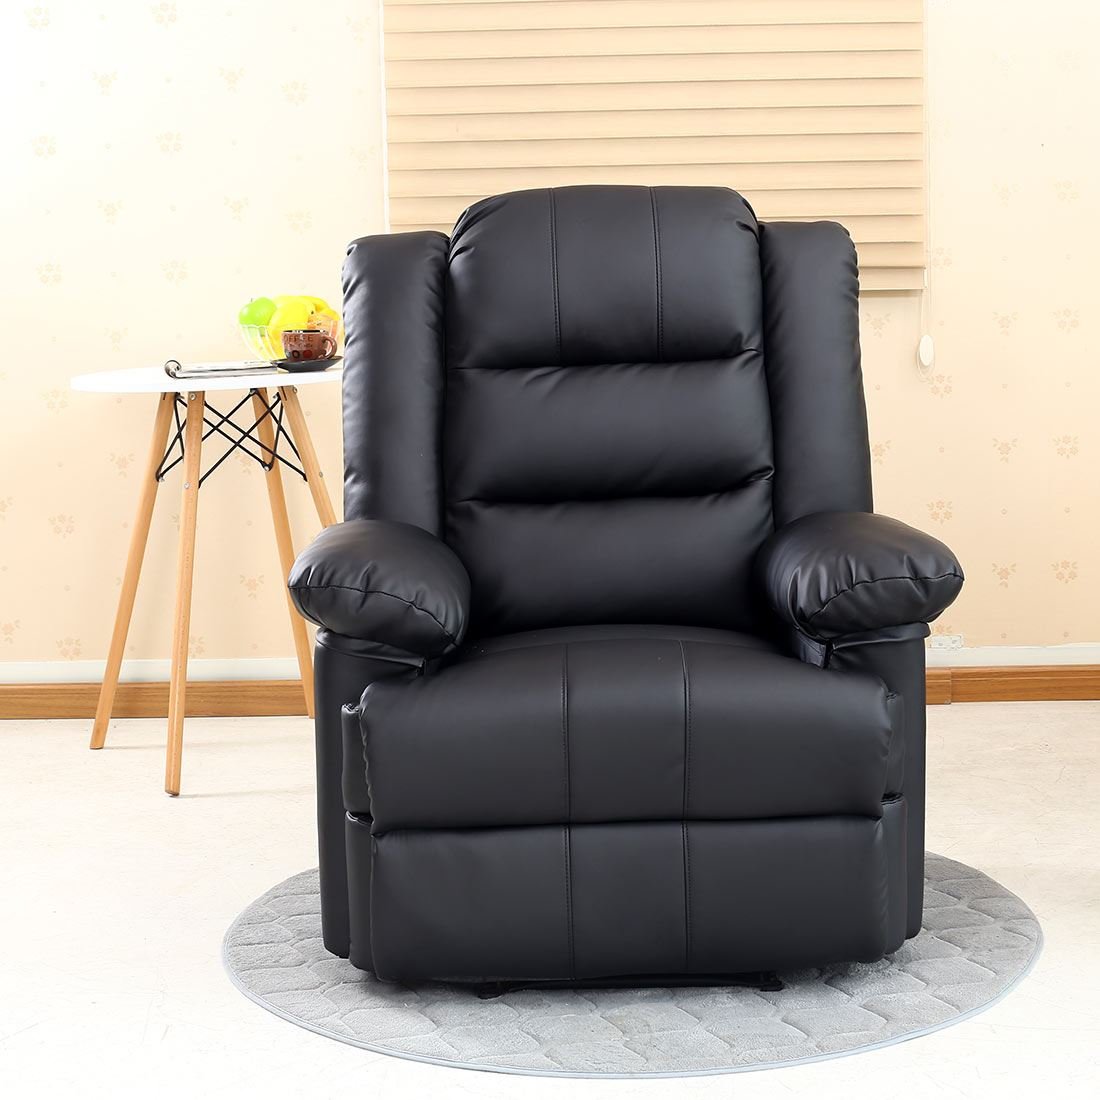 leather lounge armchair loxley leather recliner armchair sofa home lounge chair 16659 | 38253f28 5eae 48b3 8966 f72cf653b9cc